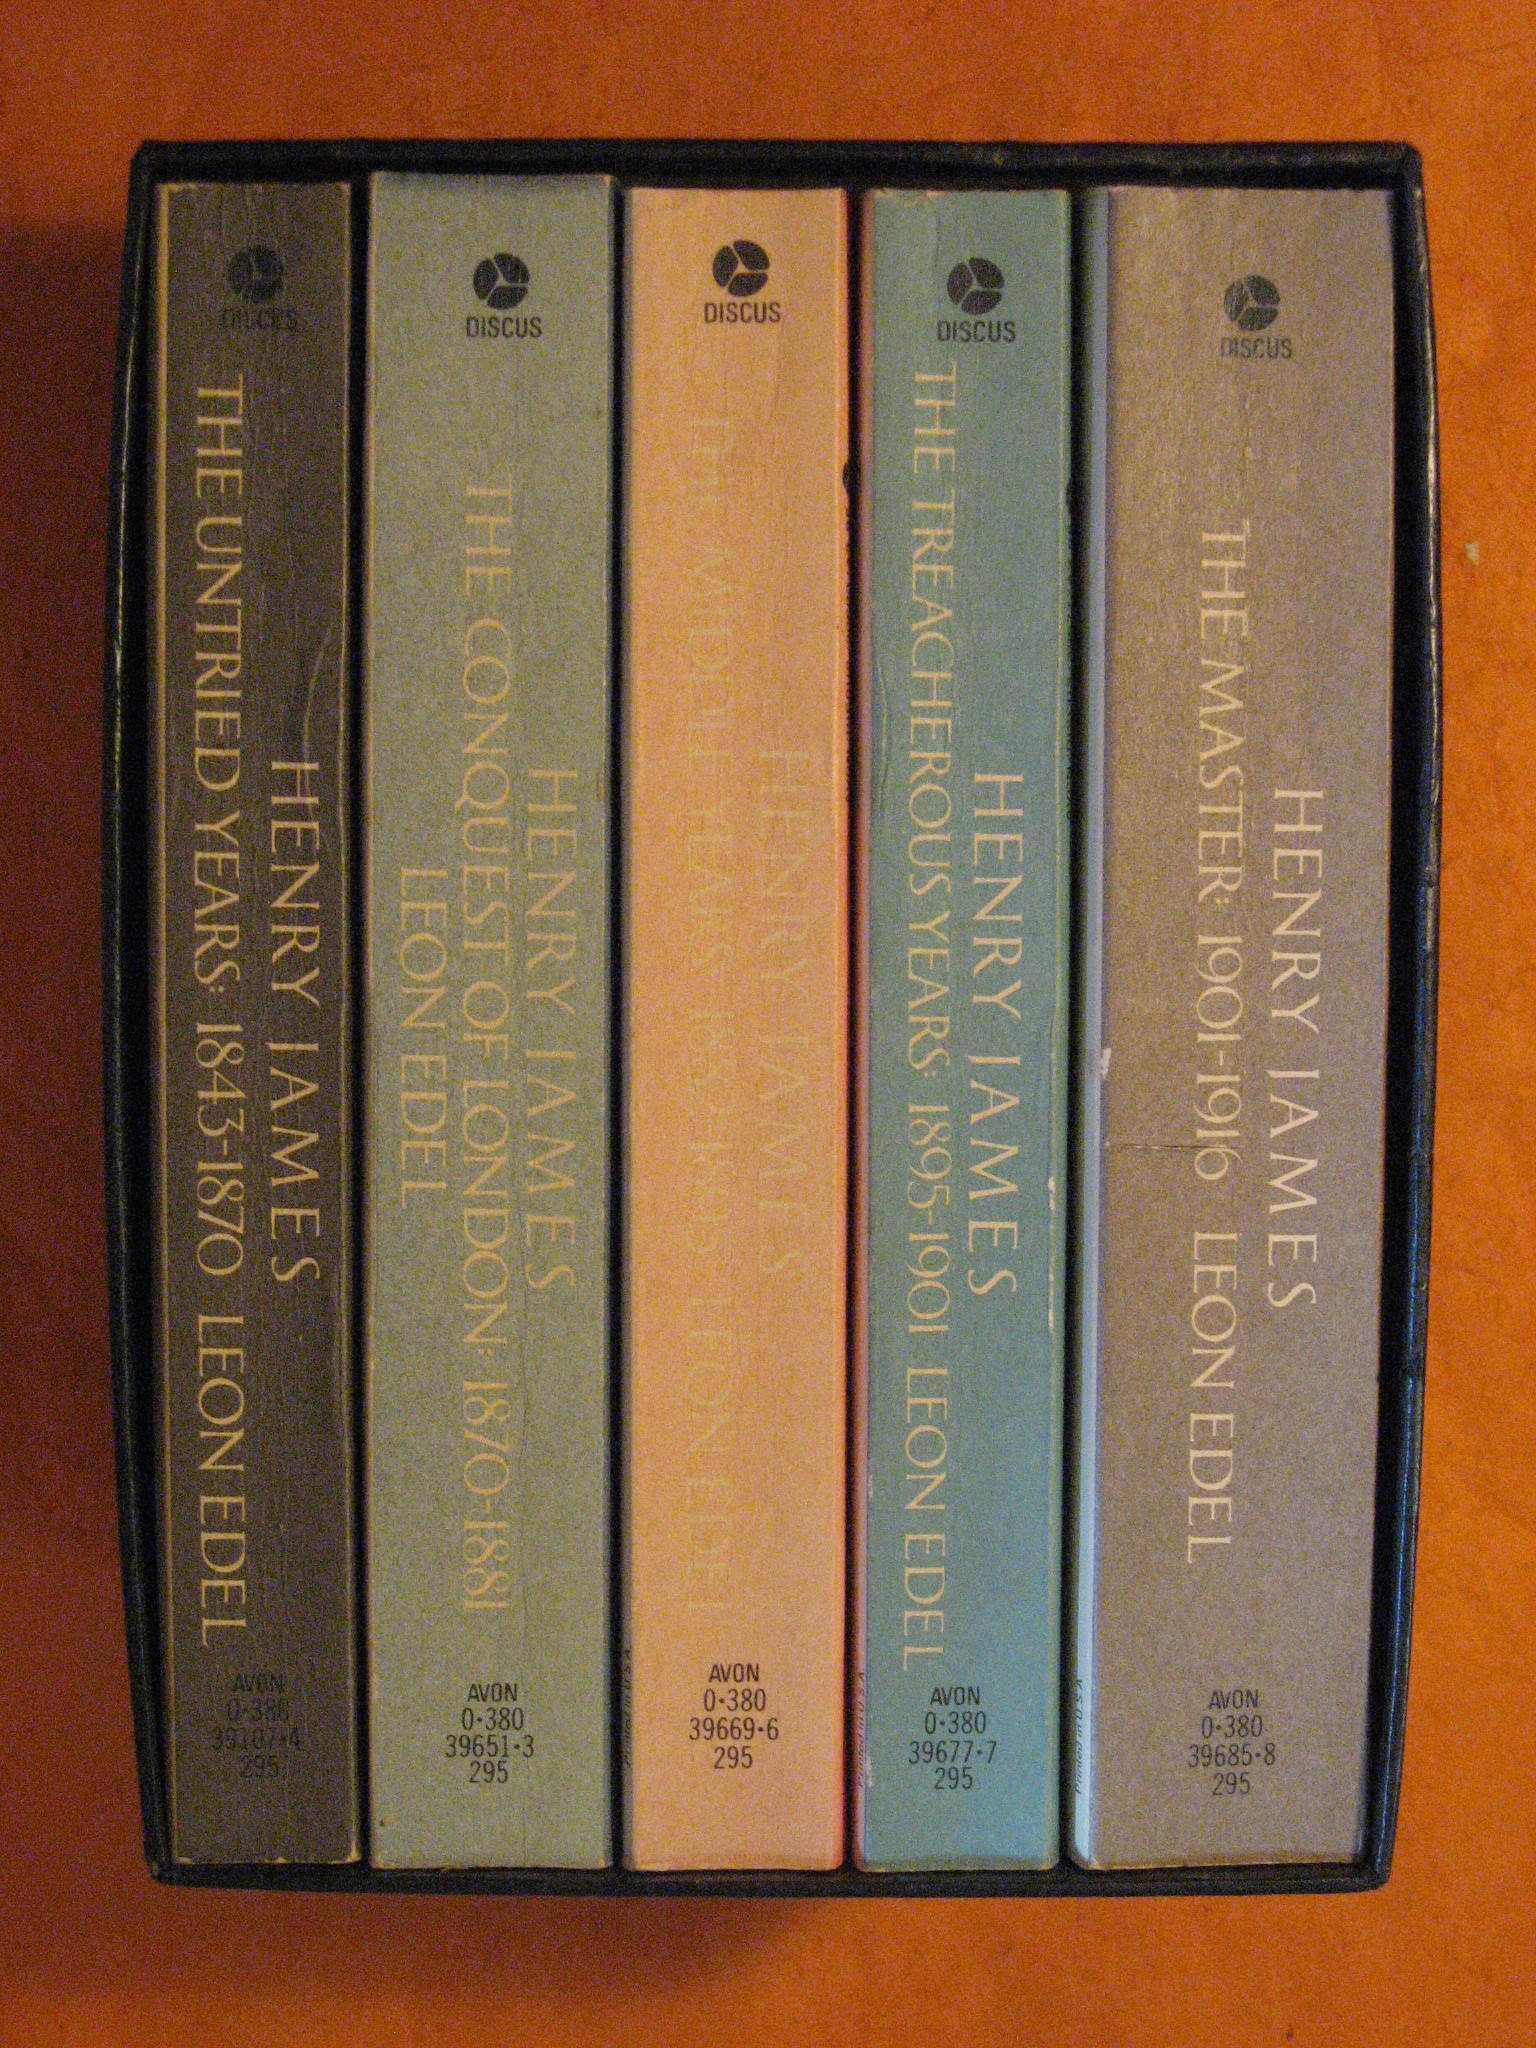 Henry James the Complete Biography -- 5 Vol. Boxed Set, Edel, Leon